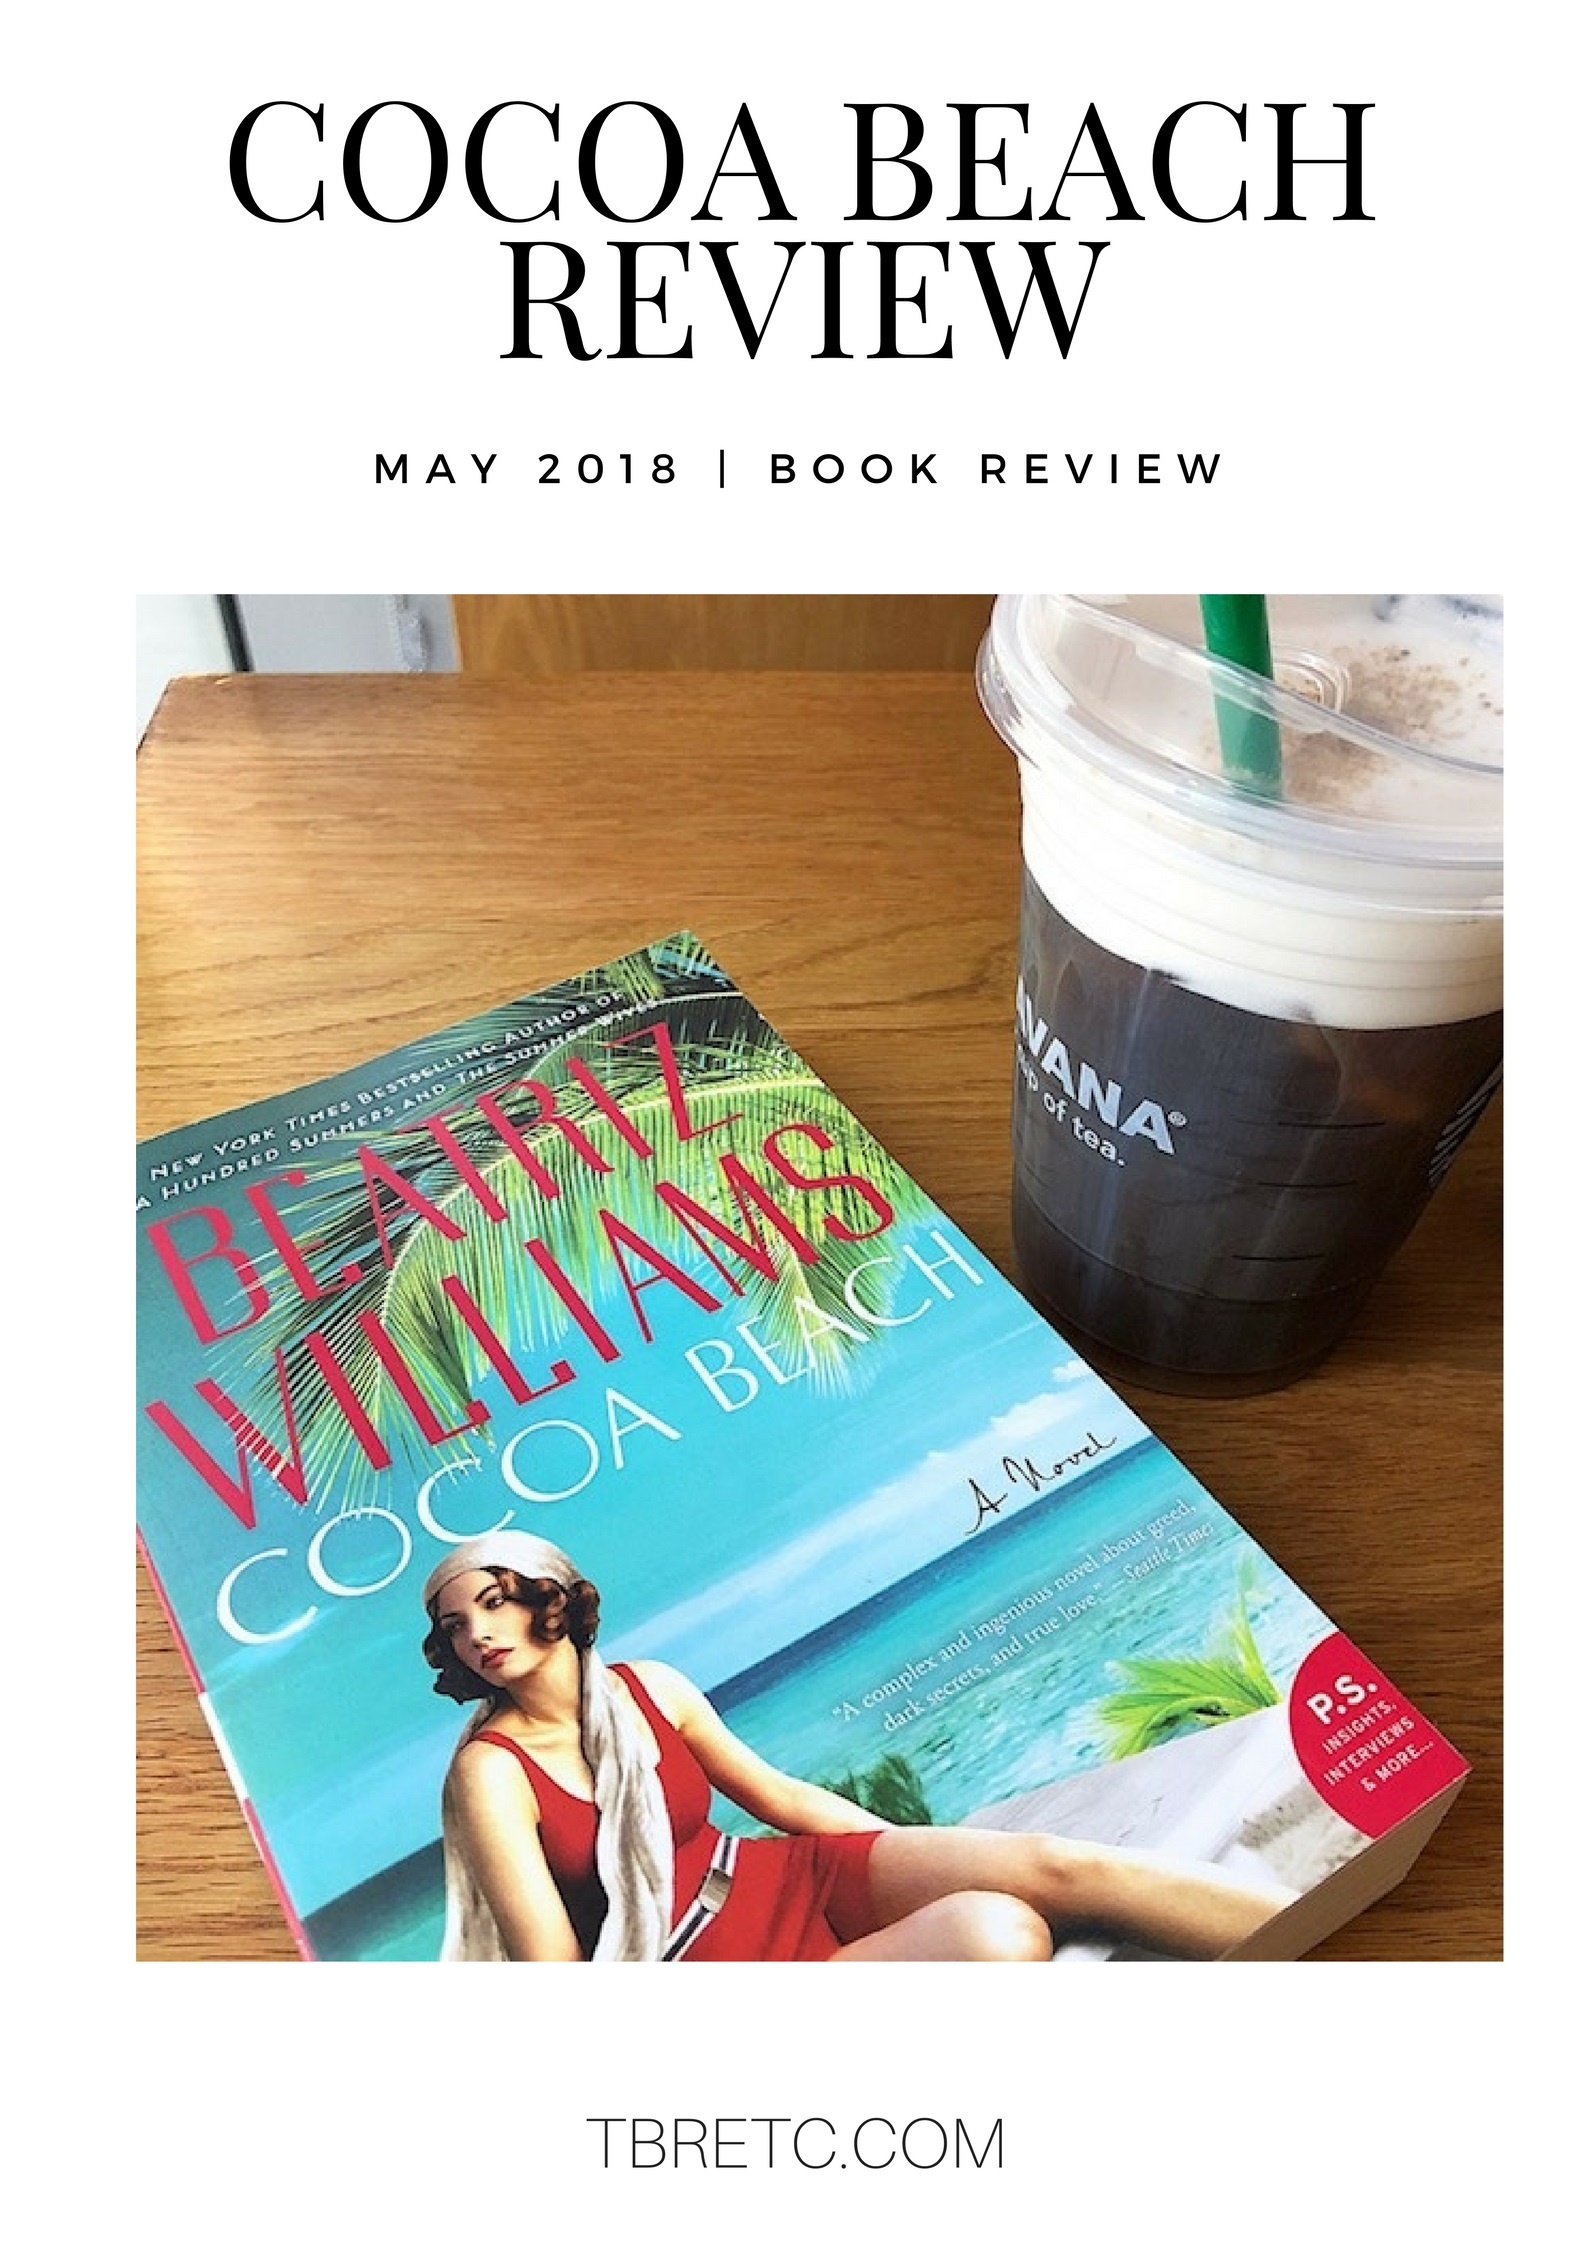 Review of Cocoa Beach _ TBR Etc